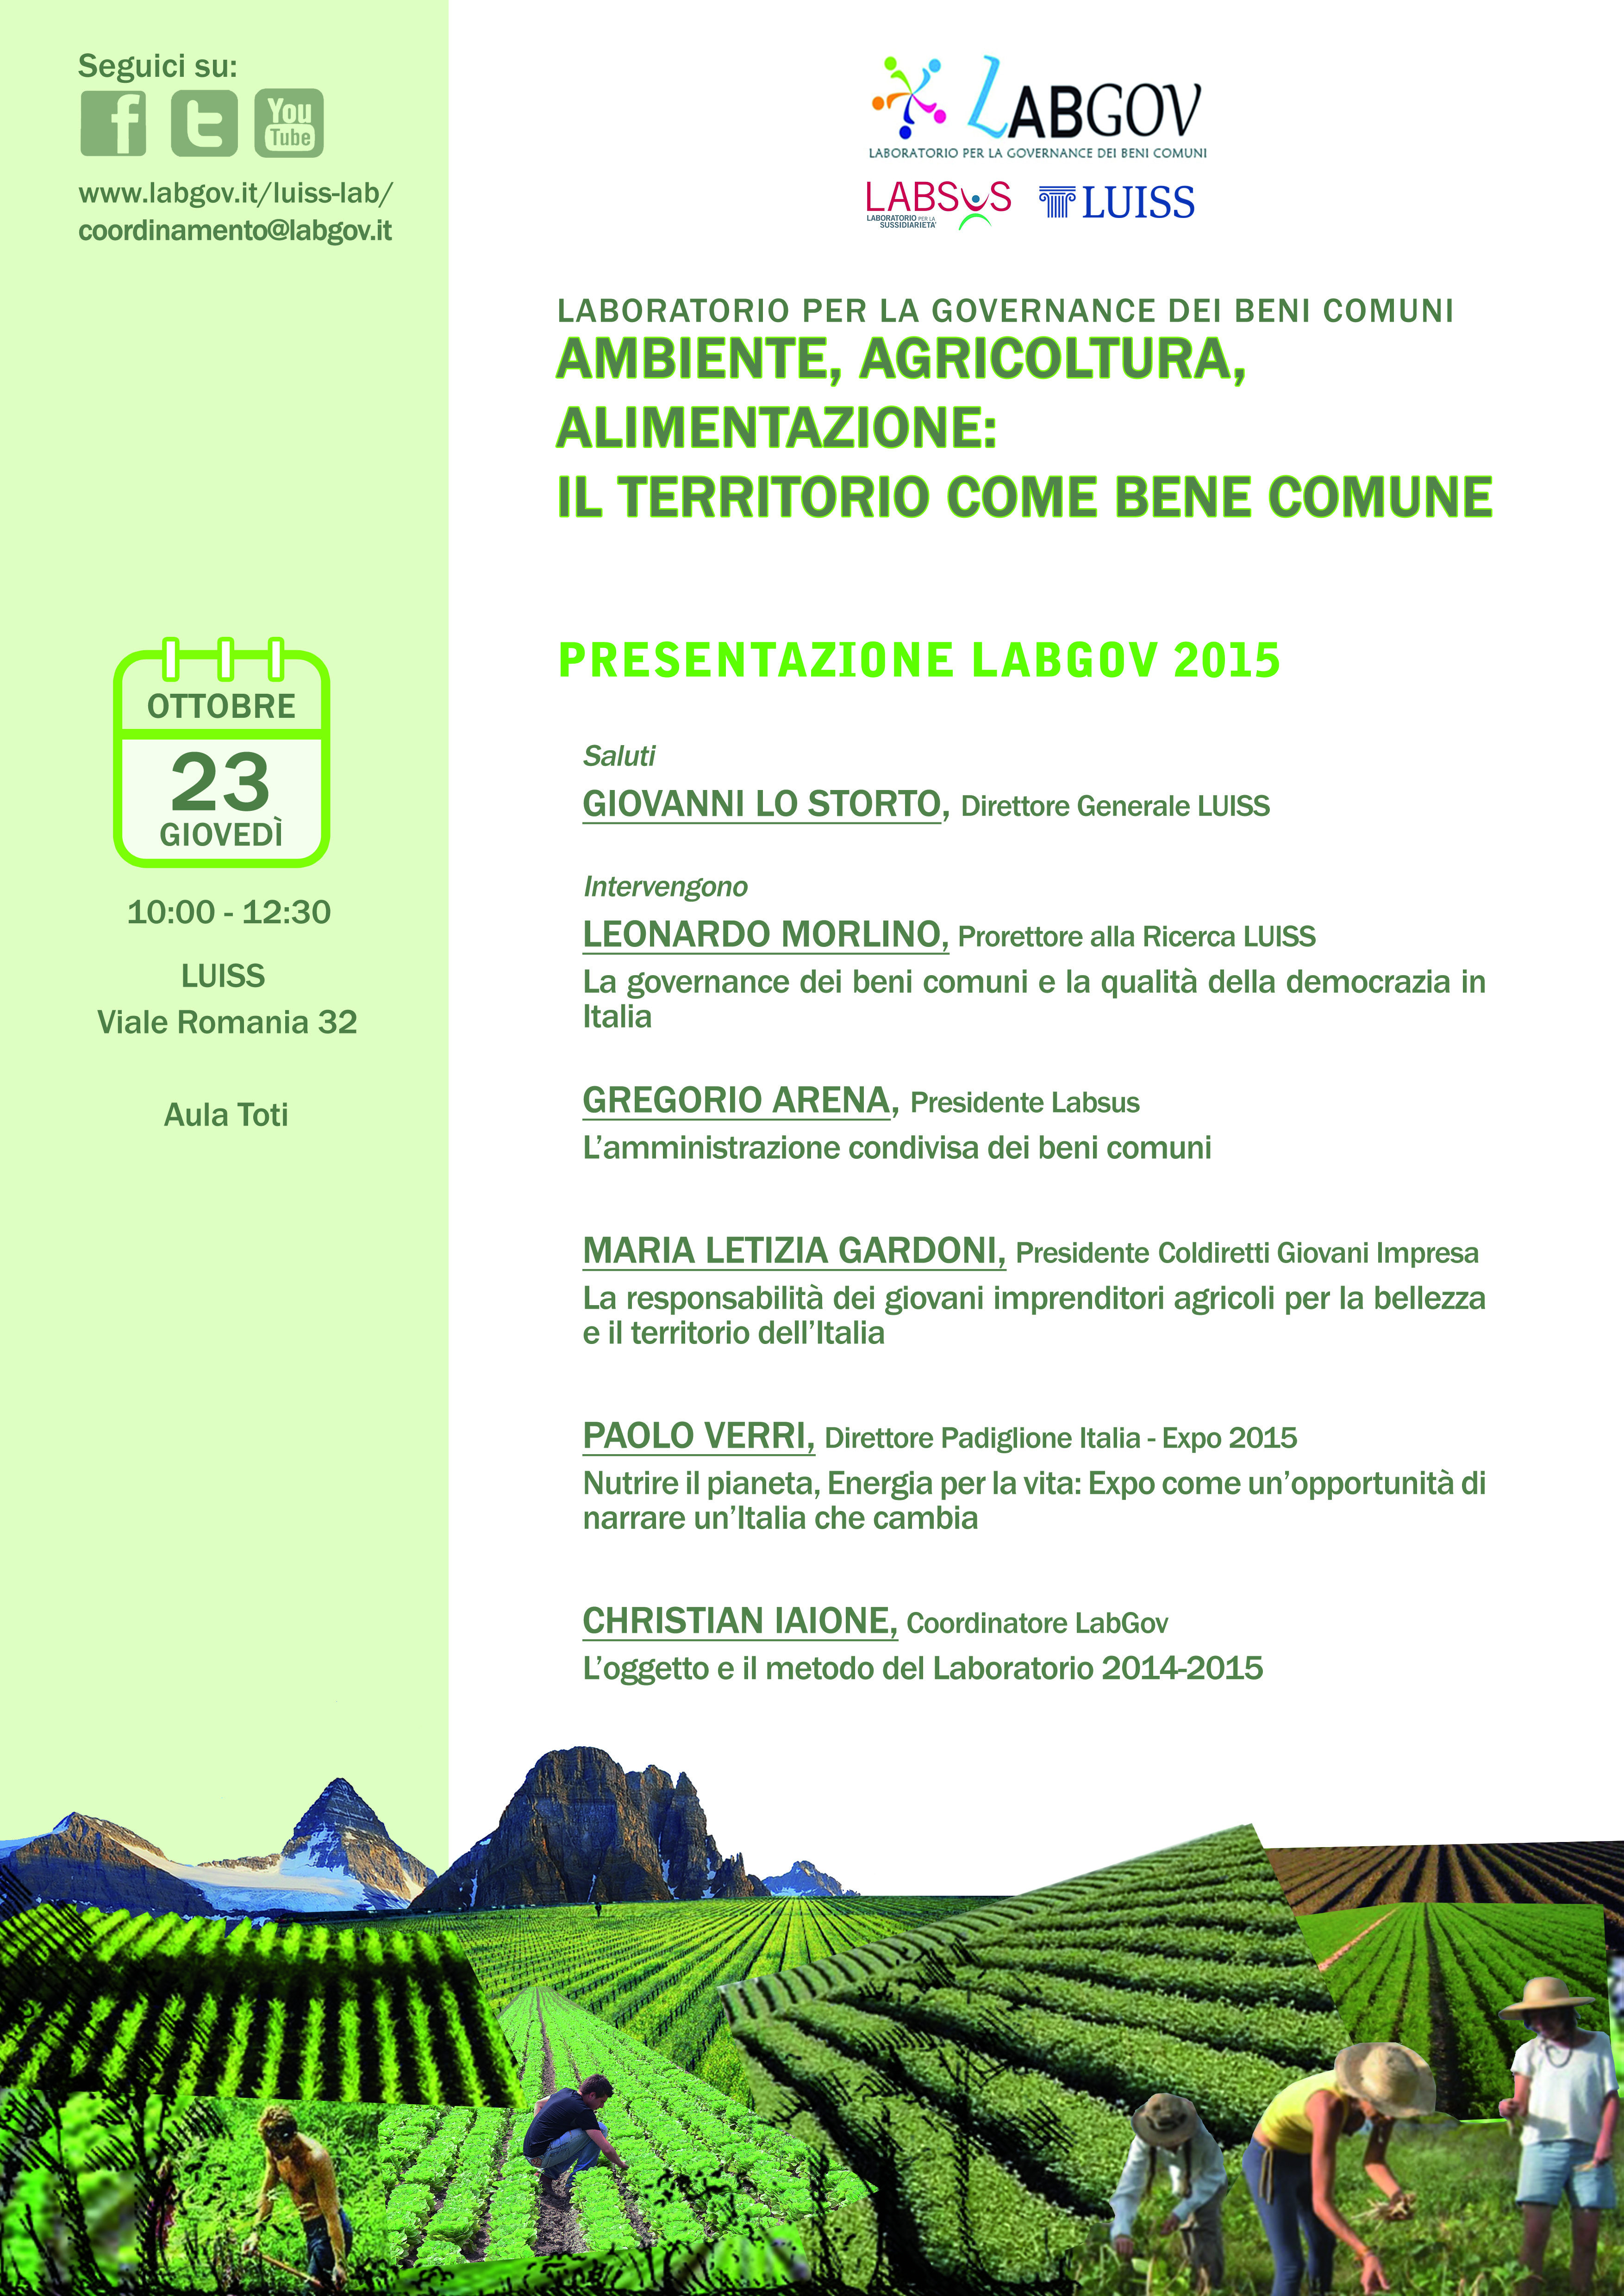 LabGov opening event: Environment, Agriculture and Food: the territory as a commons